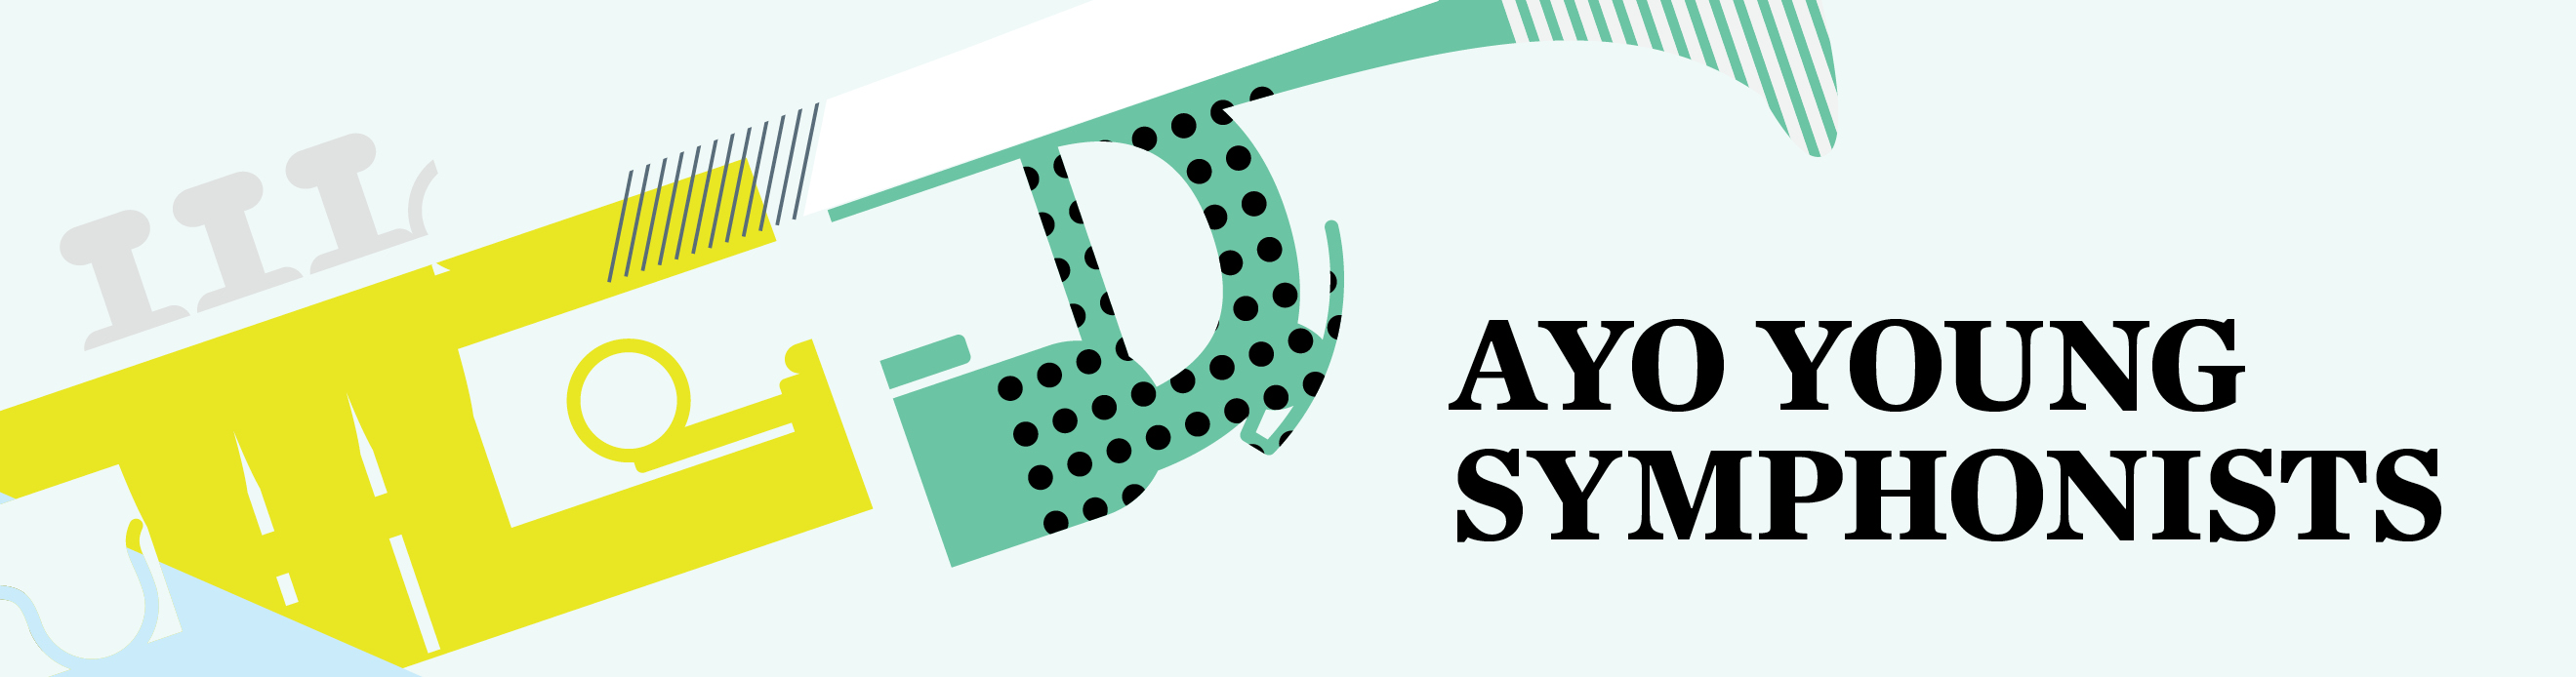 AYO Young Symphonists banner